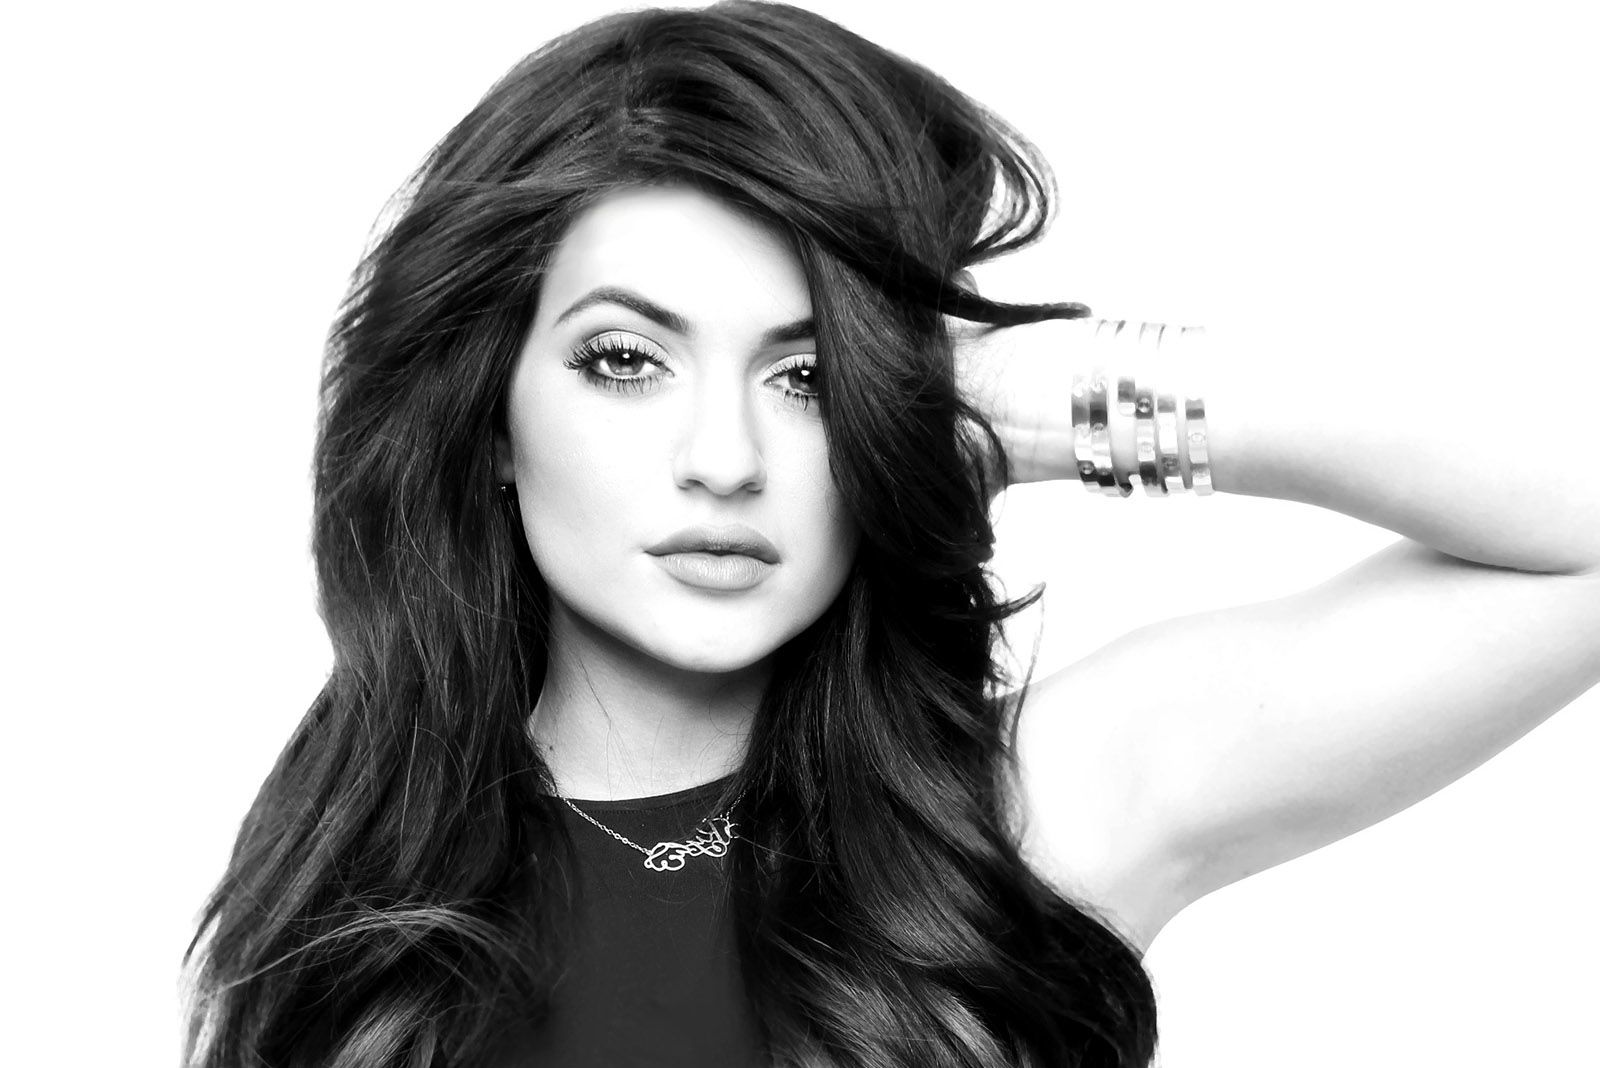 monochrome kylie jenner wallpaper 57042